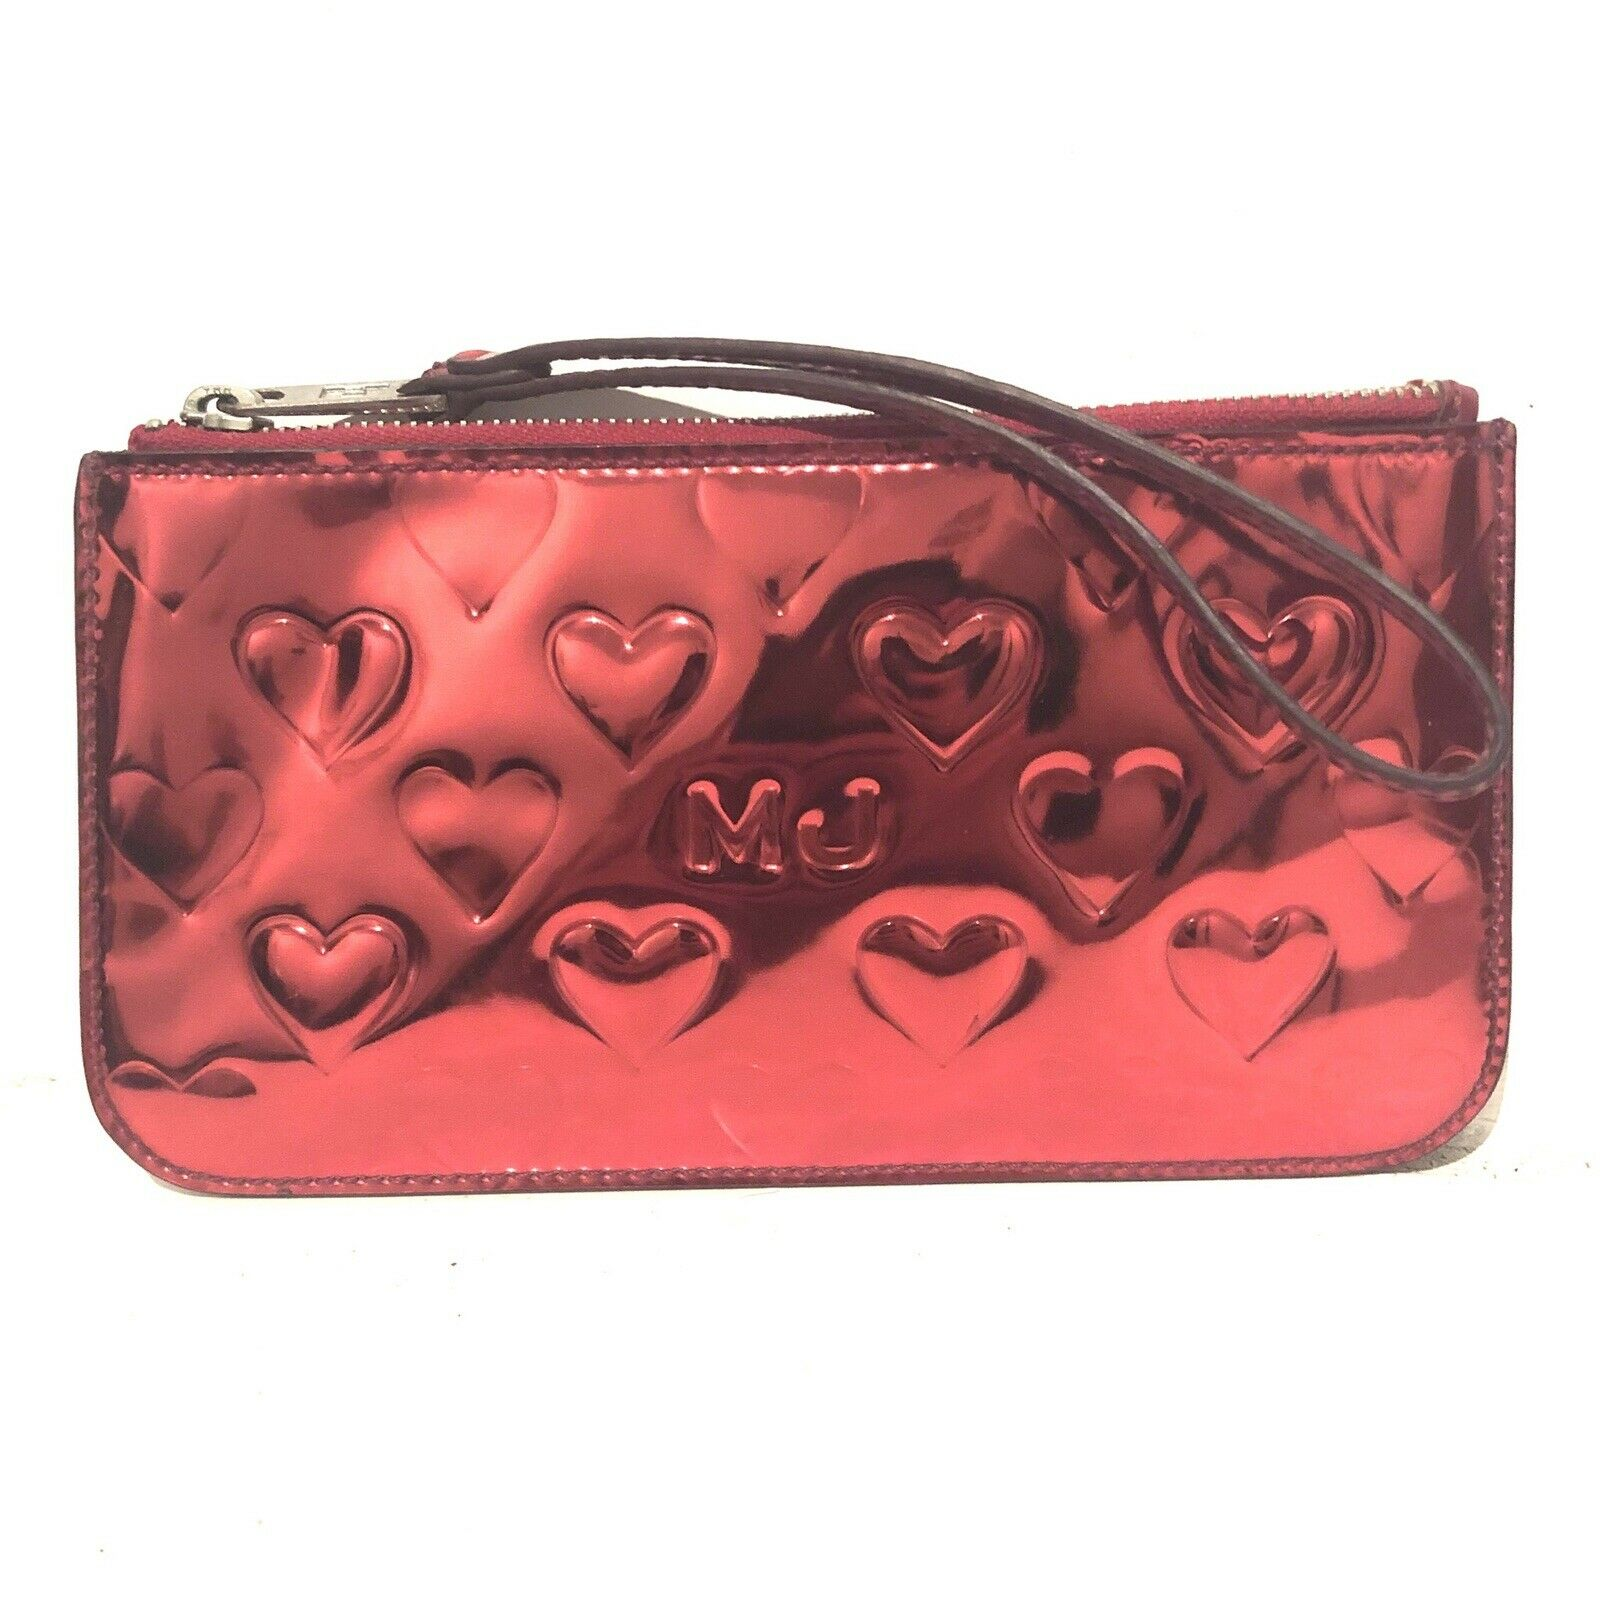 MARC JACOBS Mirrored Red Leather Clutch Zip Up Purse